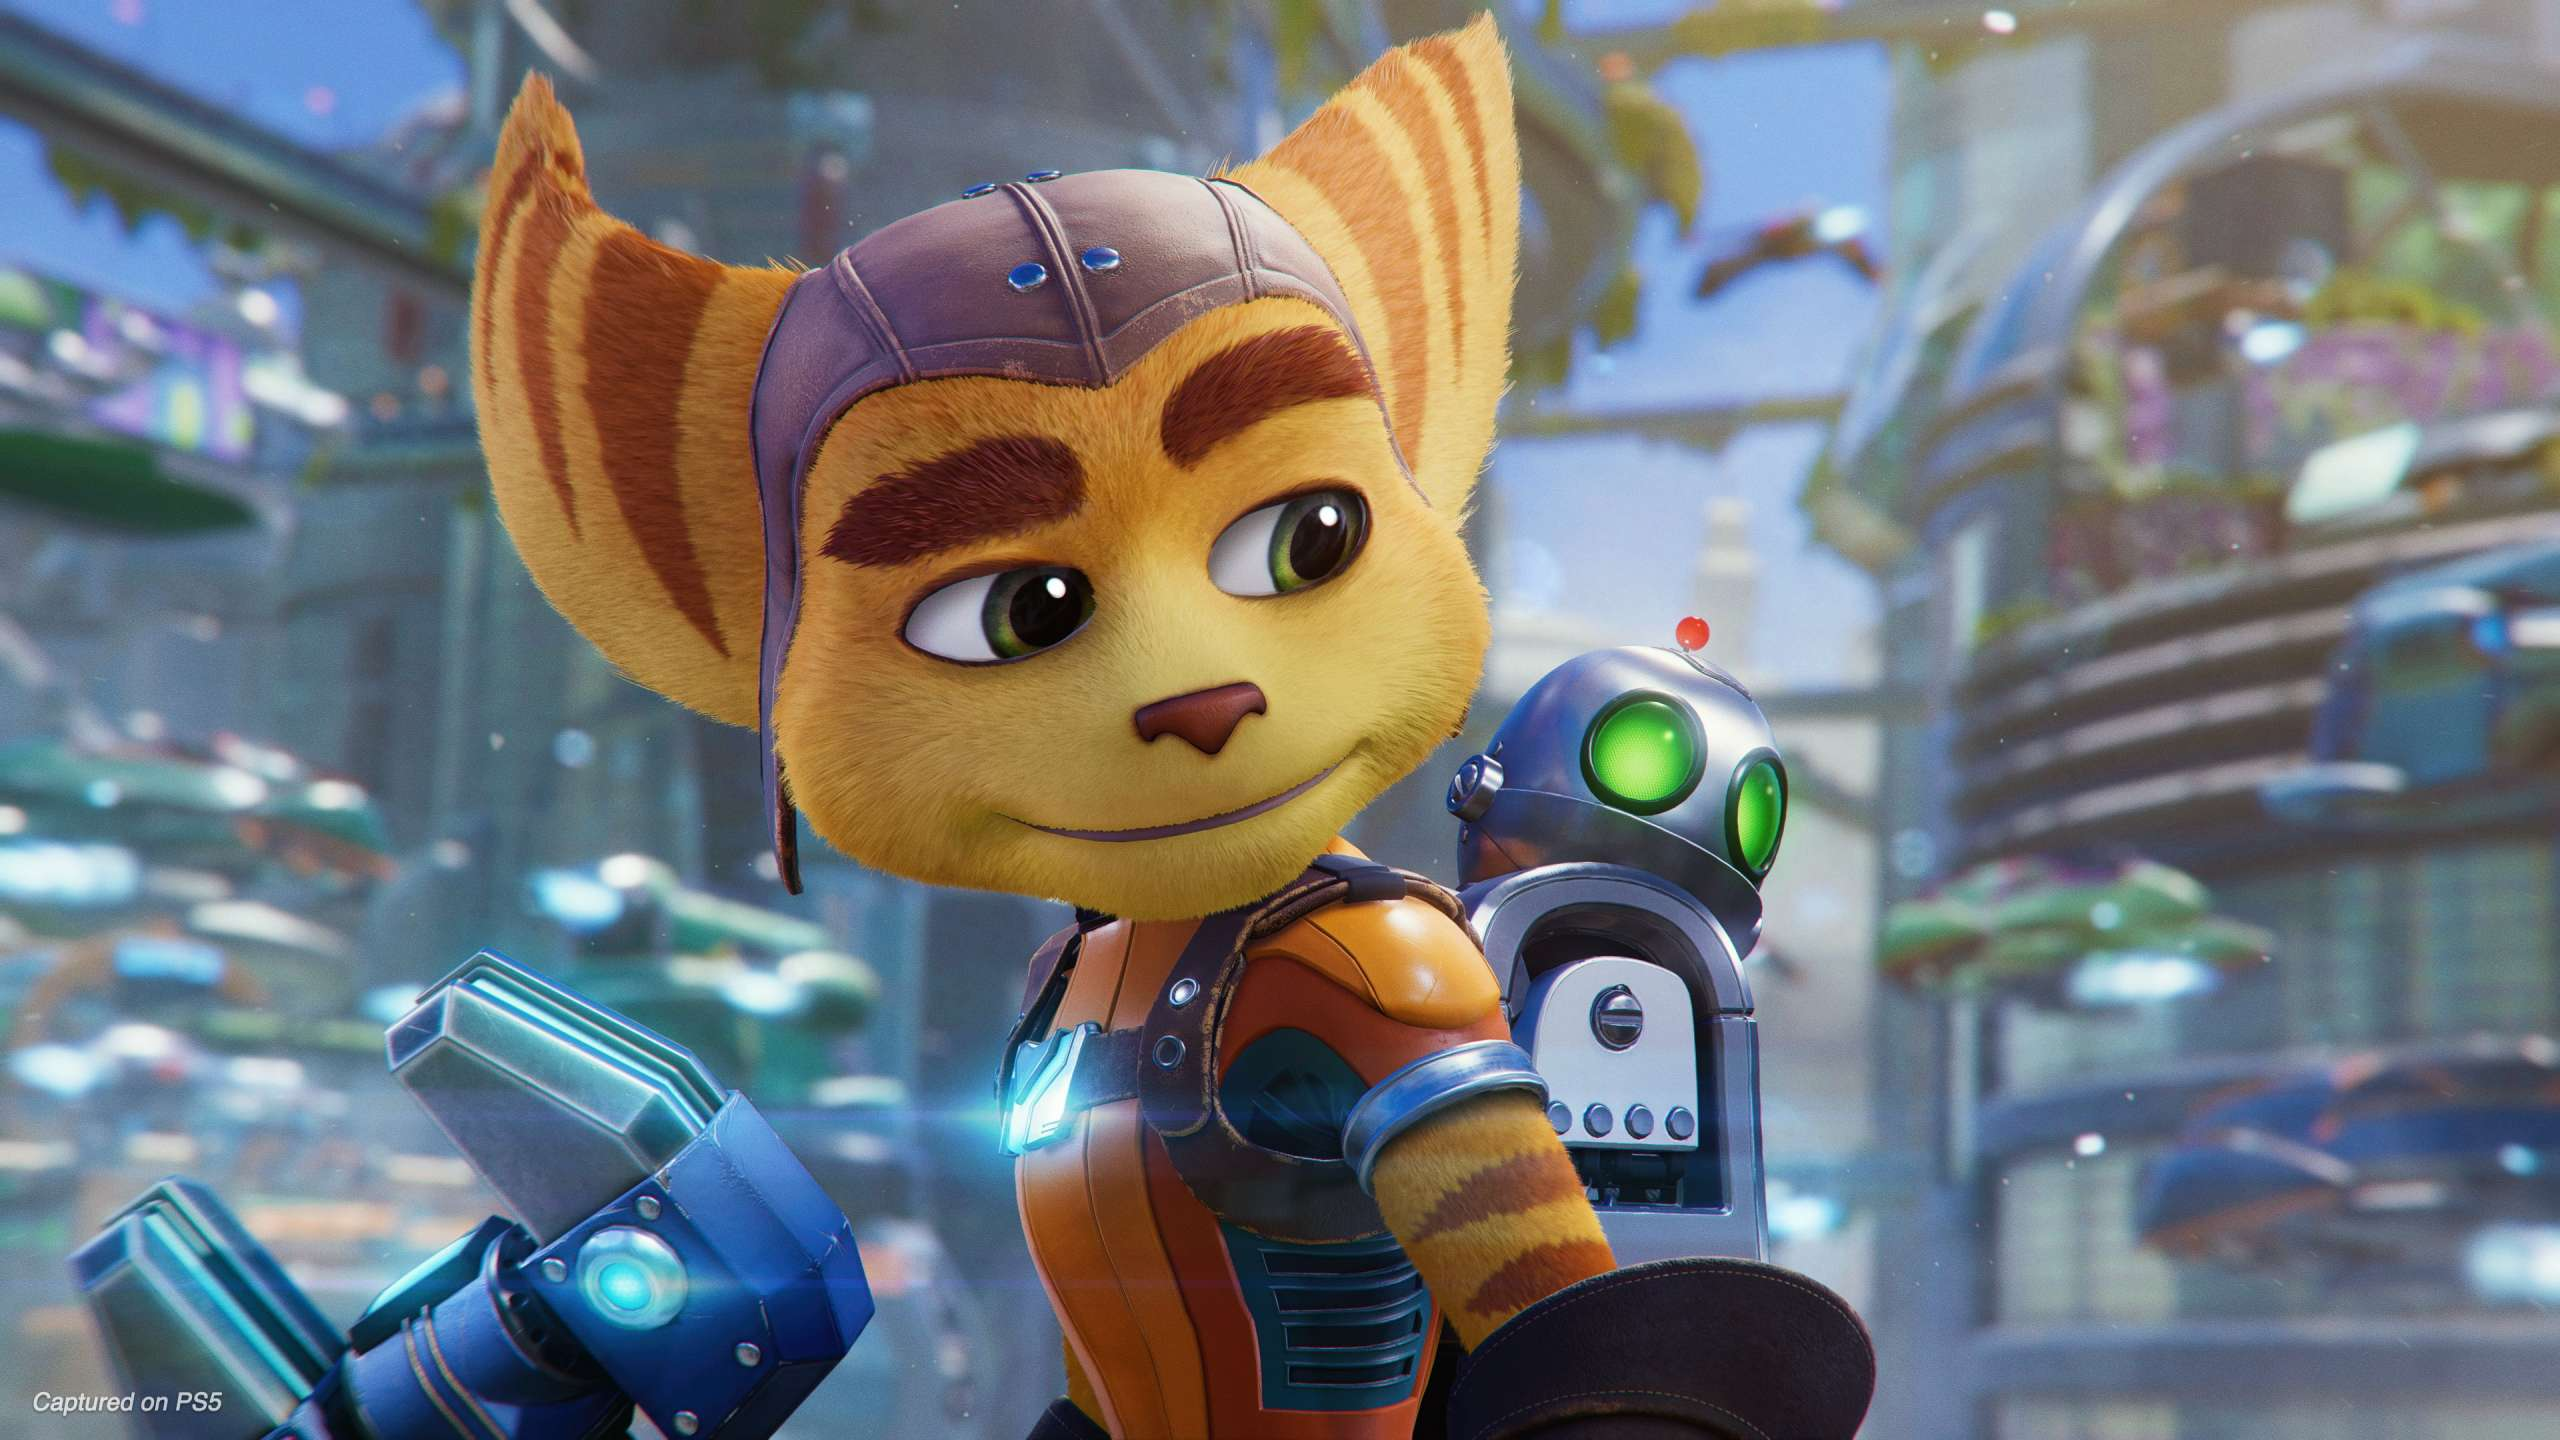 PlayStation's 5 DualSense Controller Seems To Be Custom-Made For Ratchet & Clank's Weaponry, Says Insomniac